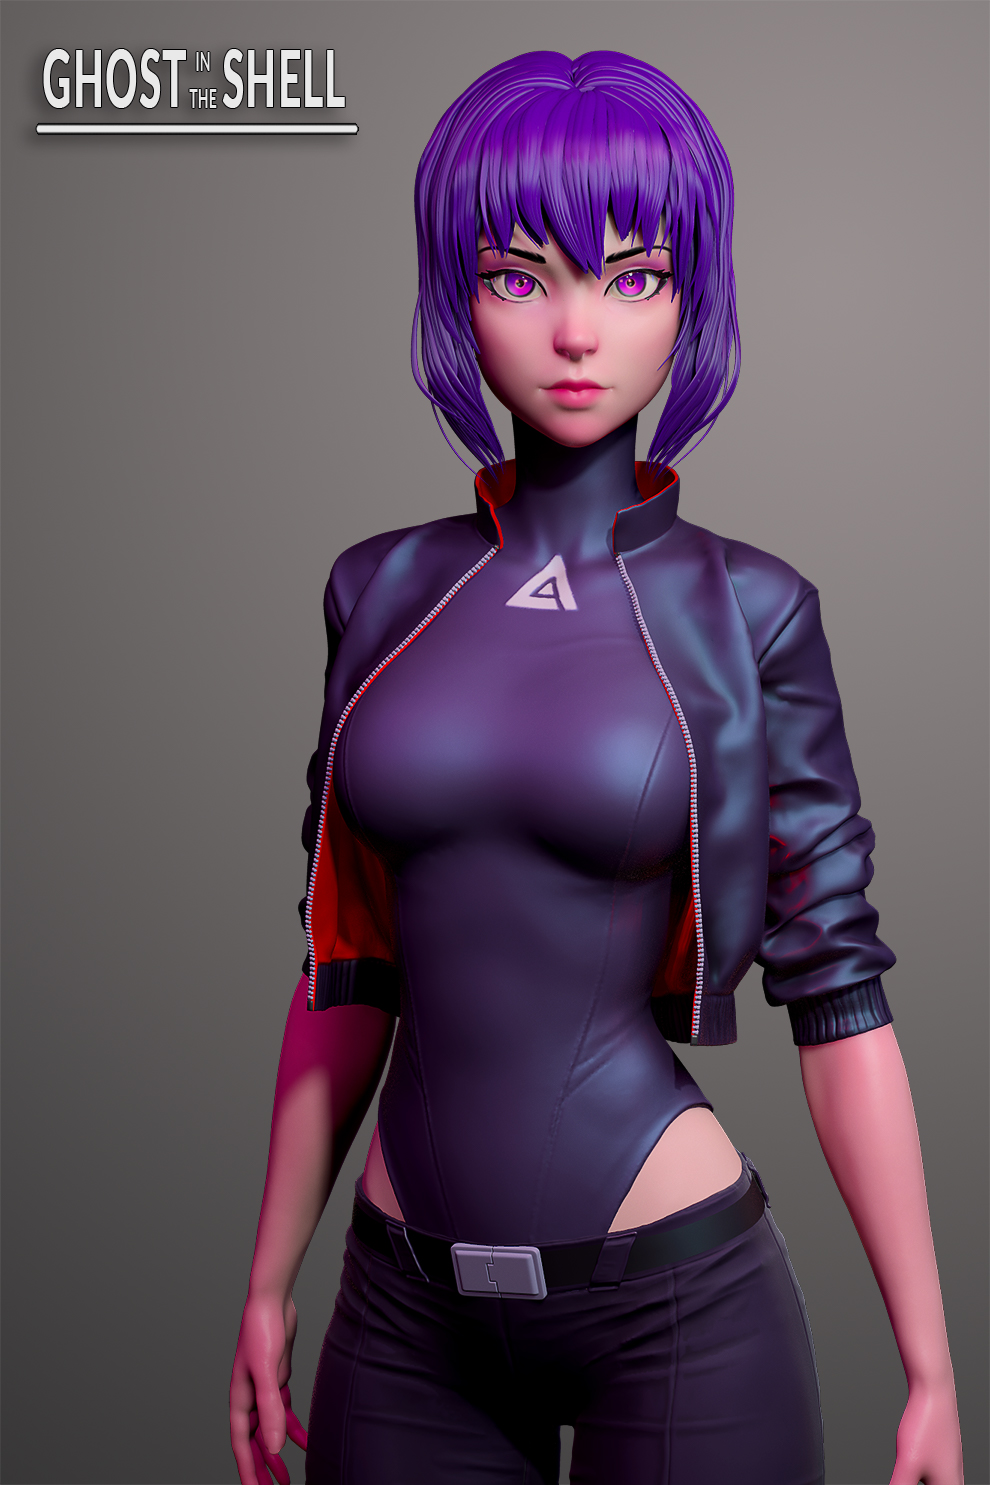 Ghost In The Shell Zbrushcentral Ghost In The Shell Zbrush Models Zbrush